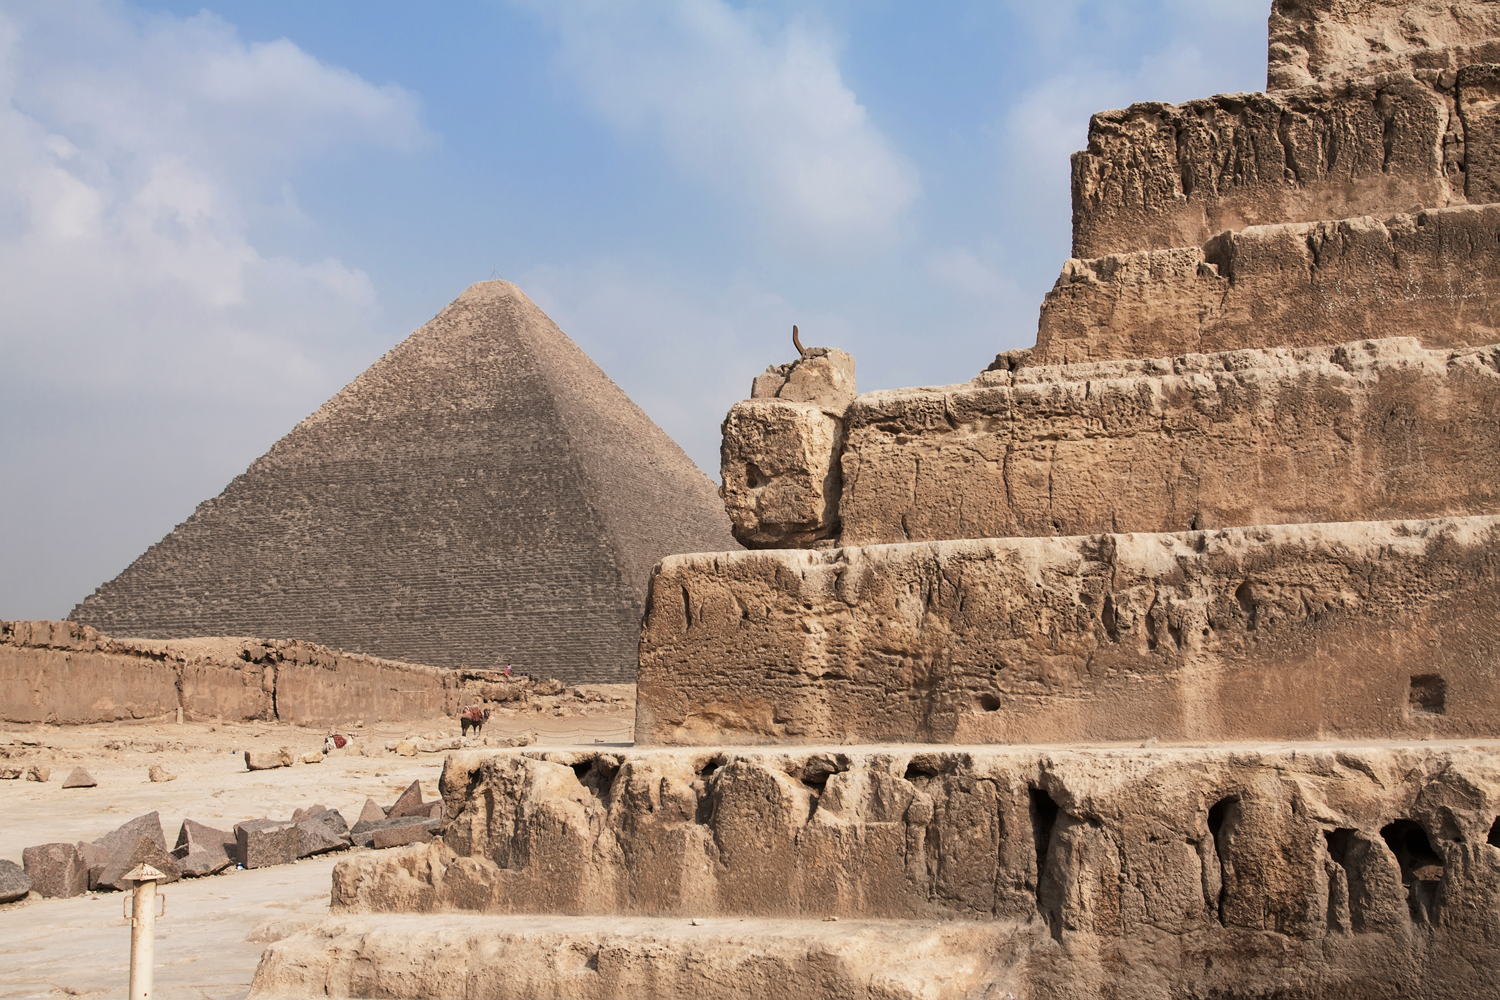 Our ancestors left us awe-inspiring monuments whose grandeur never has been replicated so far. Our own legacy to future generations however, may consist of something more sublte yet fundamental: A profound understanding of the universe's inner workings. Photo: iStock.com/DKart